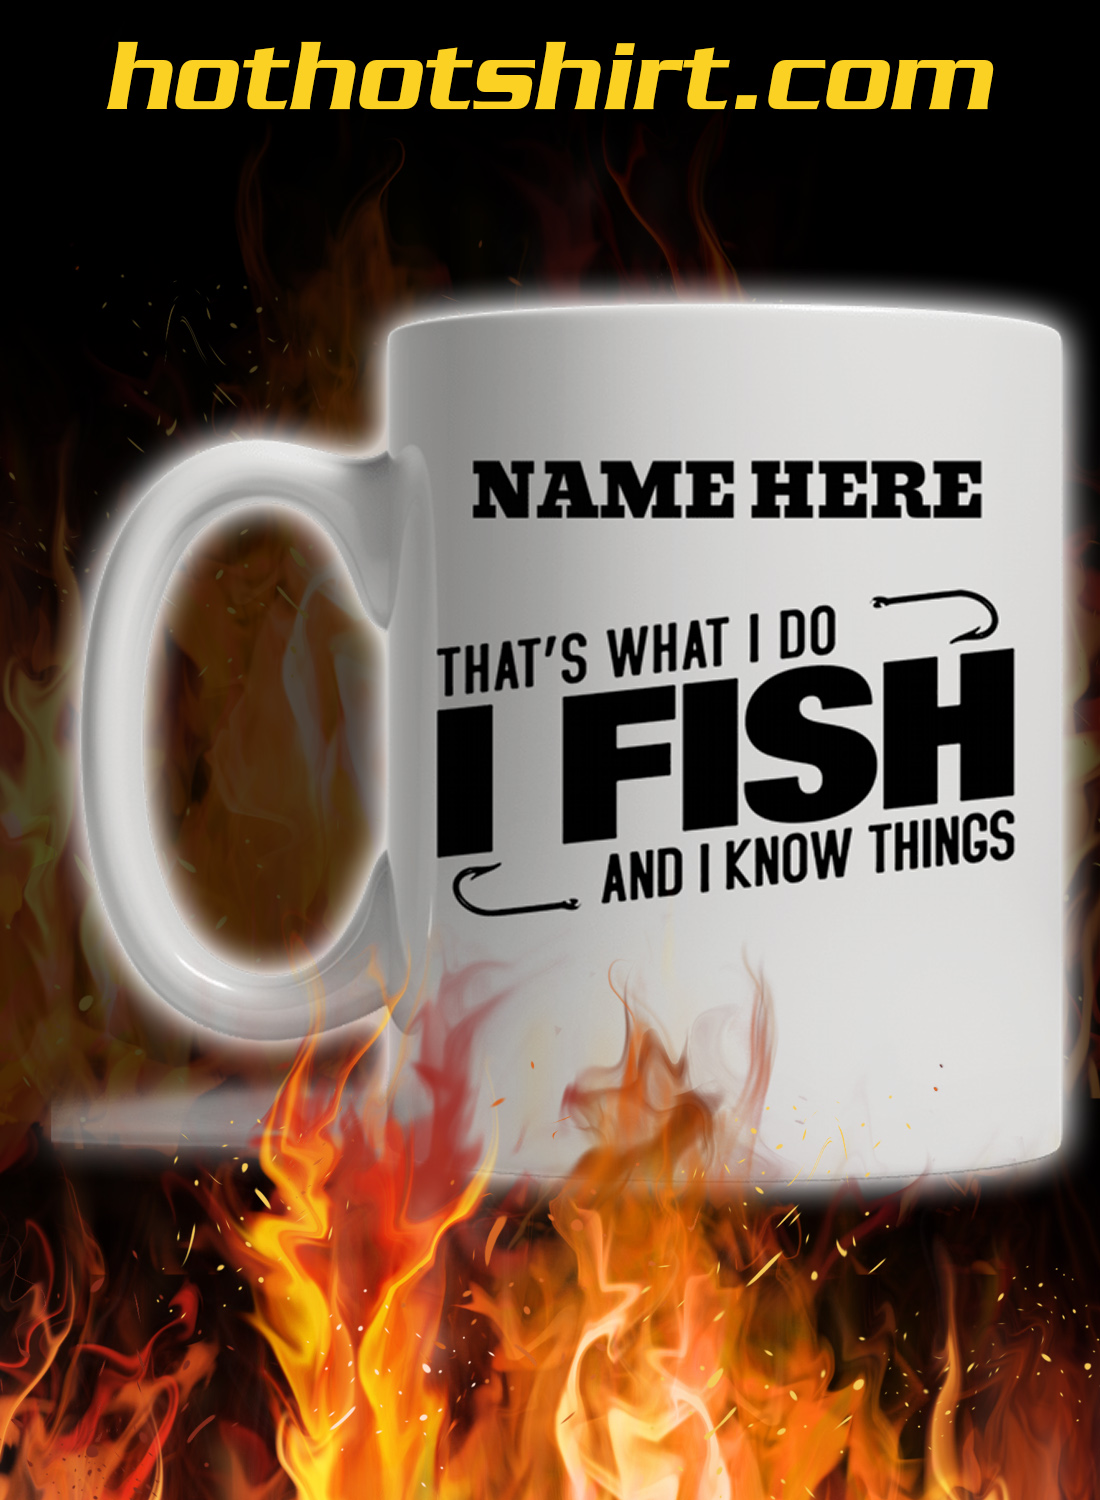 Personalized custom name That's what i do i fish and i know things mug 2